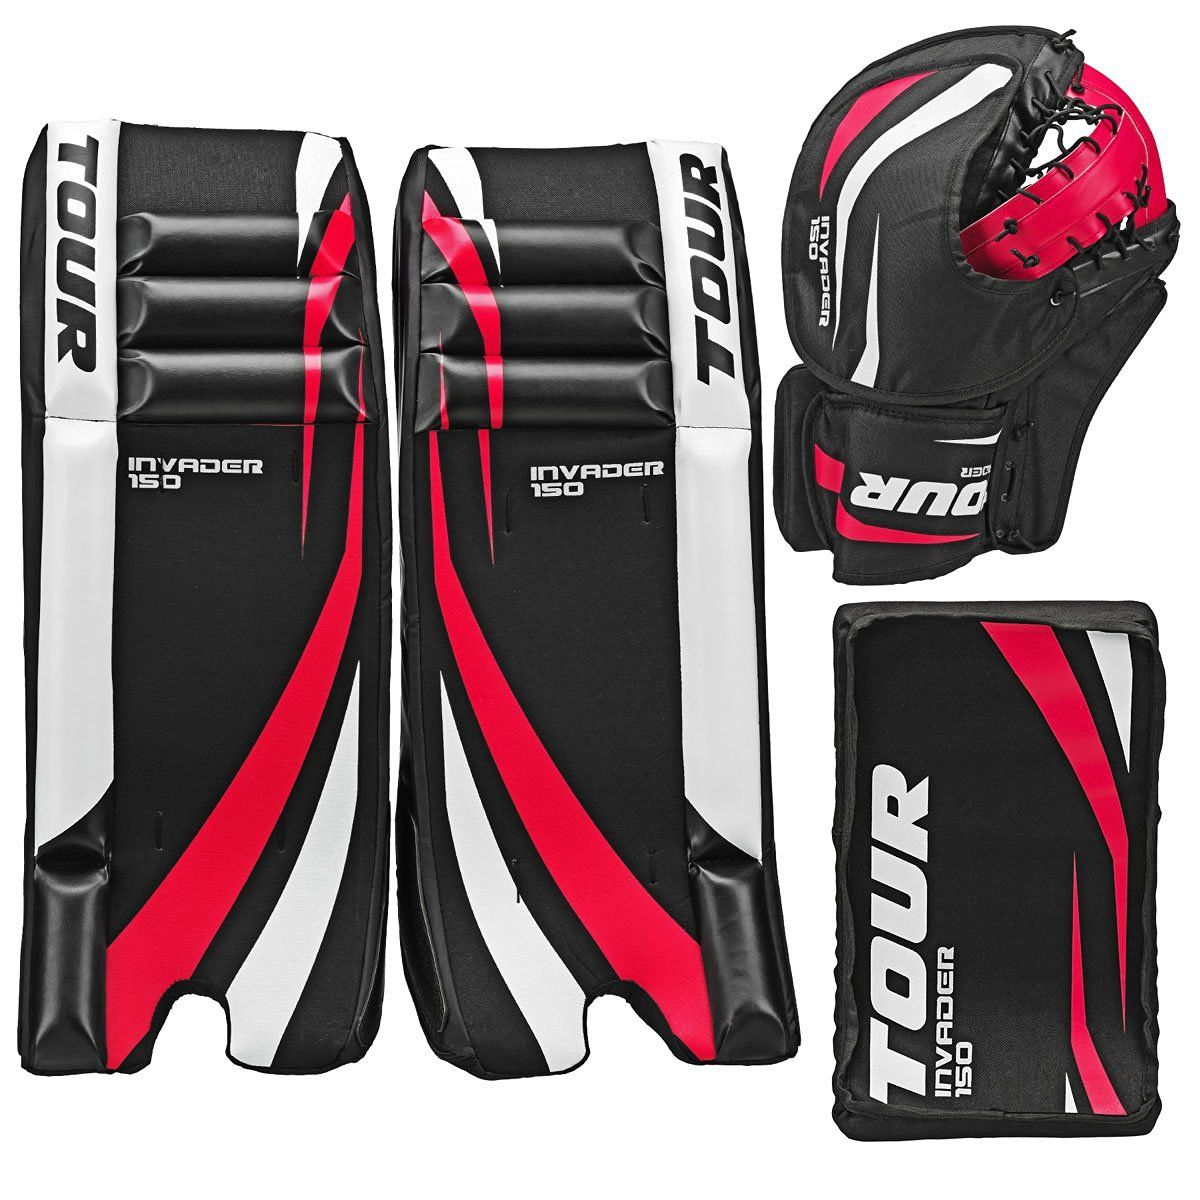 Best Hockey Reviews looks at the sets available today